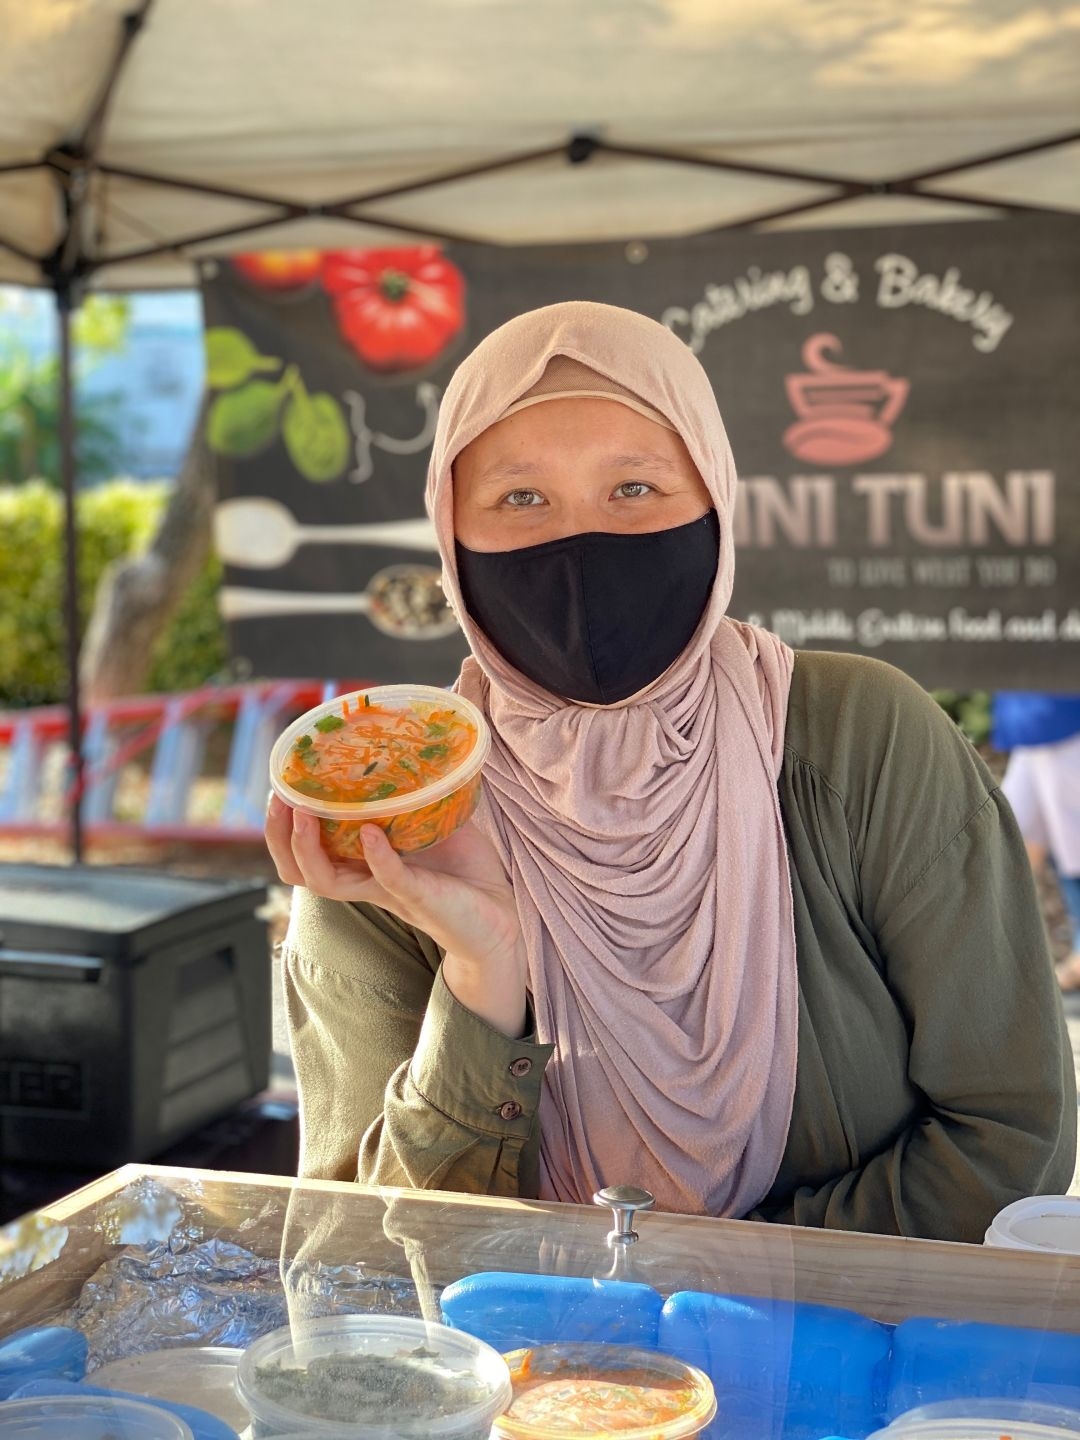 Dana Takenova's Cuni Tuni sells Middle Eastern, Mediterranean, Central Asian and Eastern European items at the market.